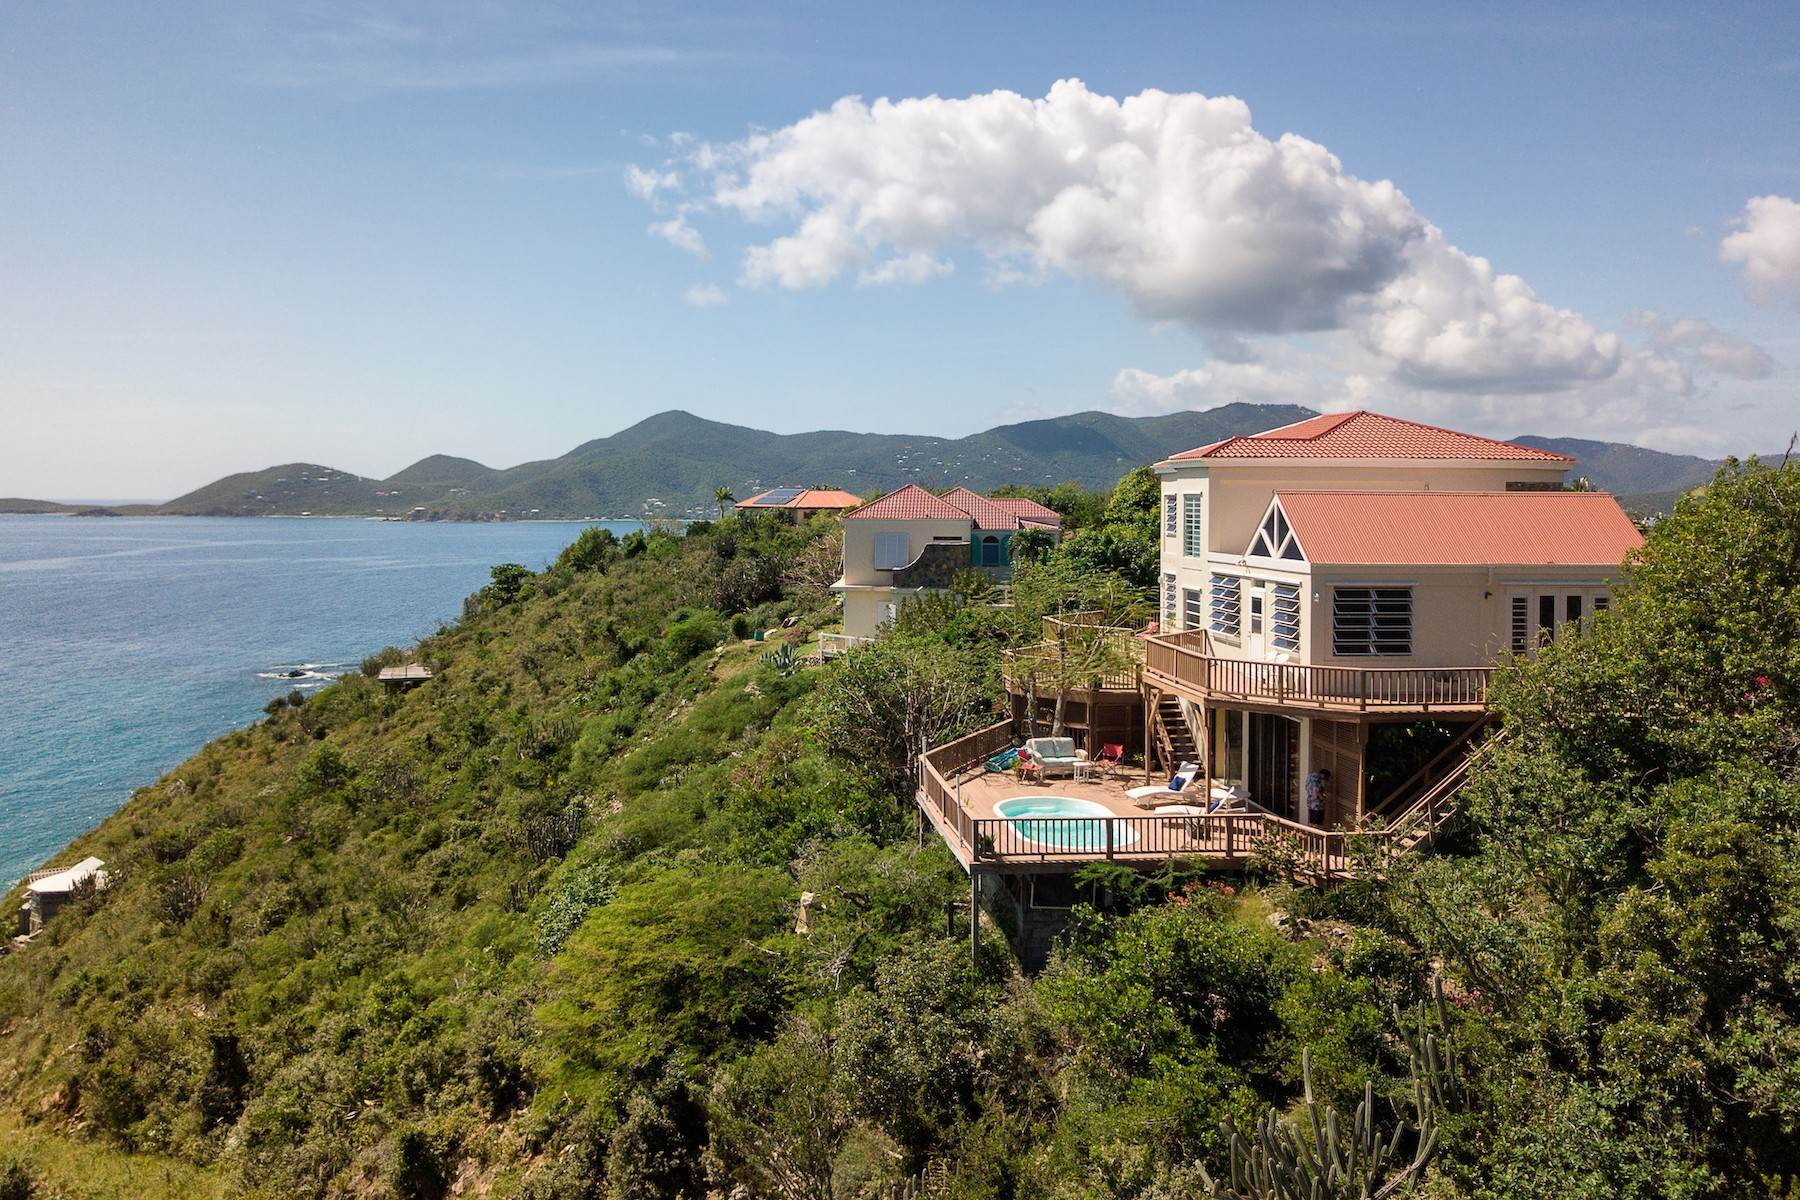 Single Family Homes at Wind of Change 3-16 Hansen Bay St John, Virgin Islands 00830 United States Virgin Islands